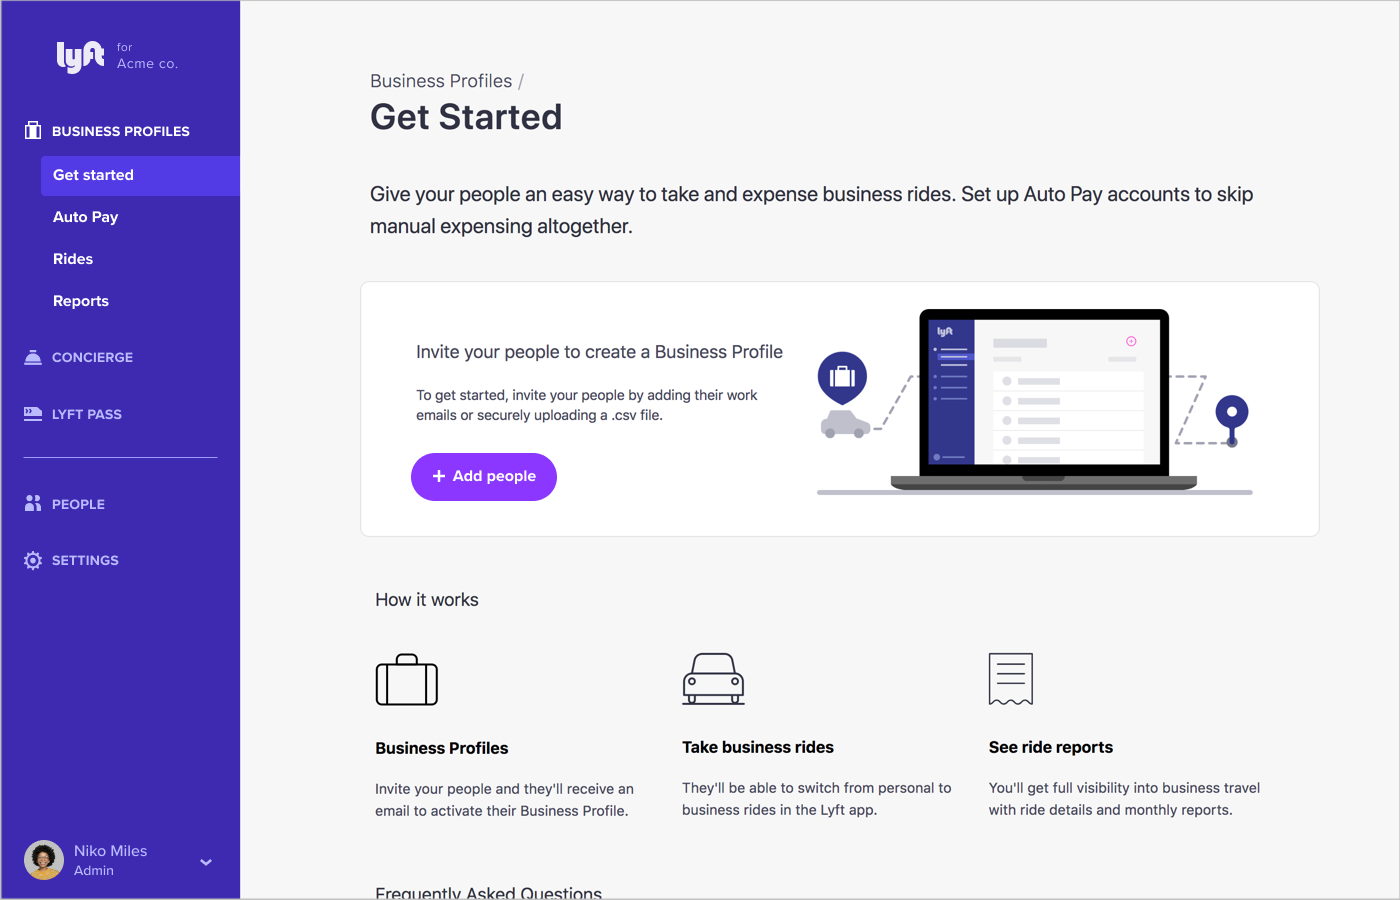 lyft_pass_updates_-_business_profile_-_get_started.png